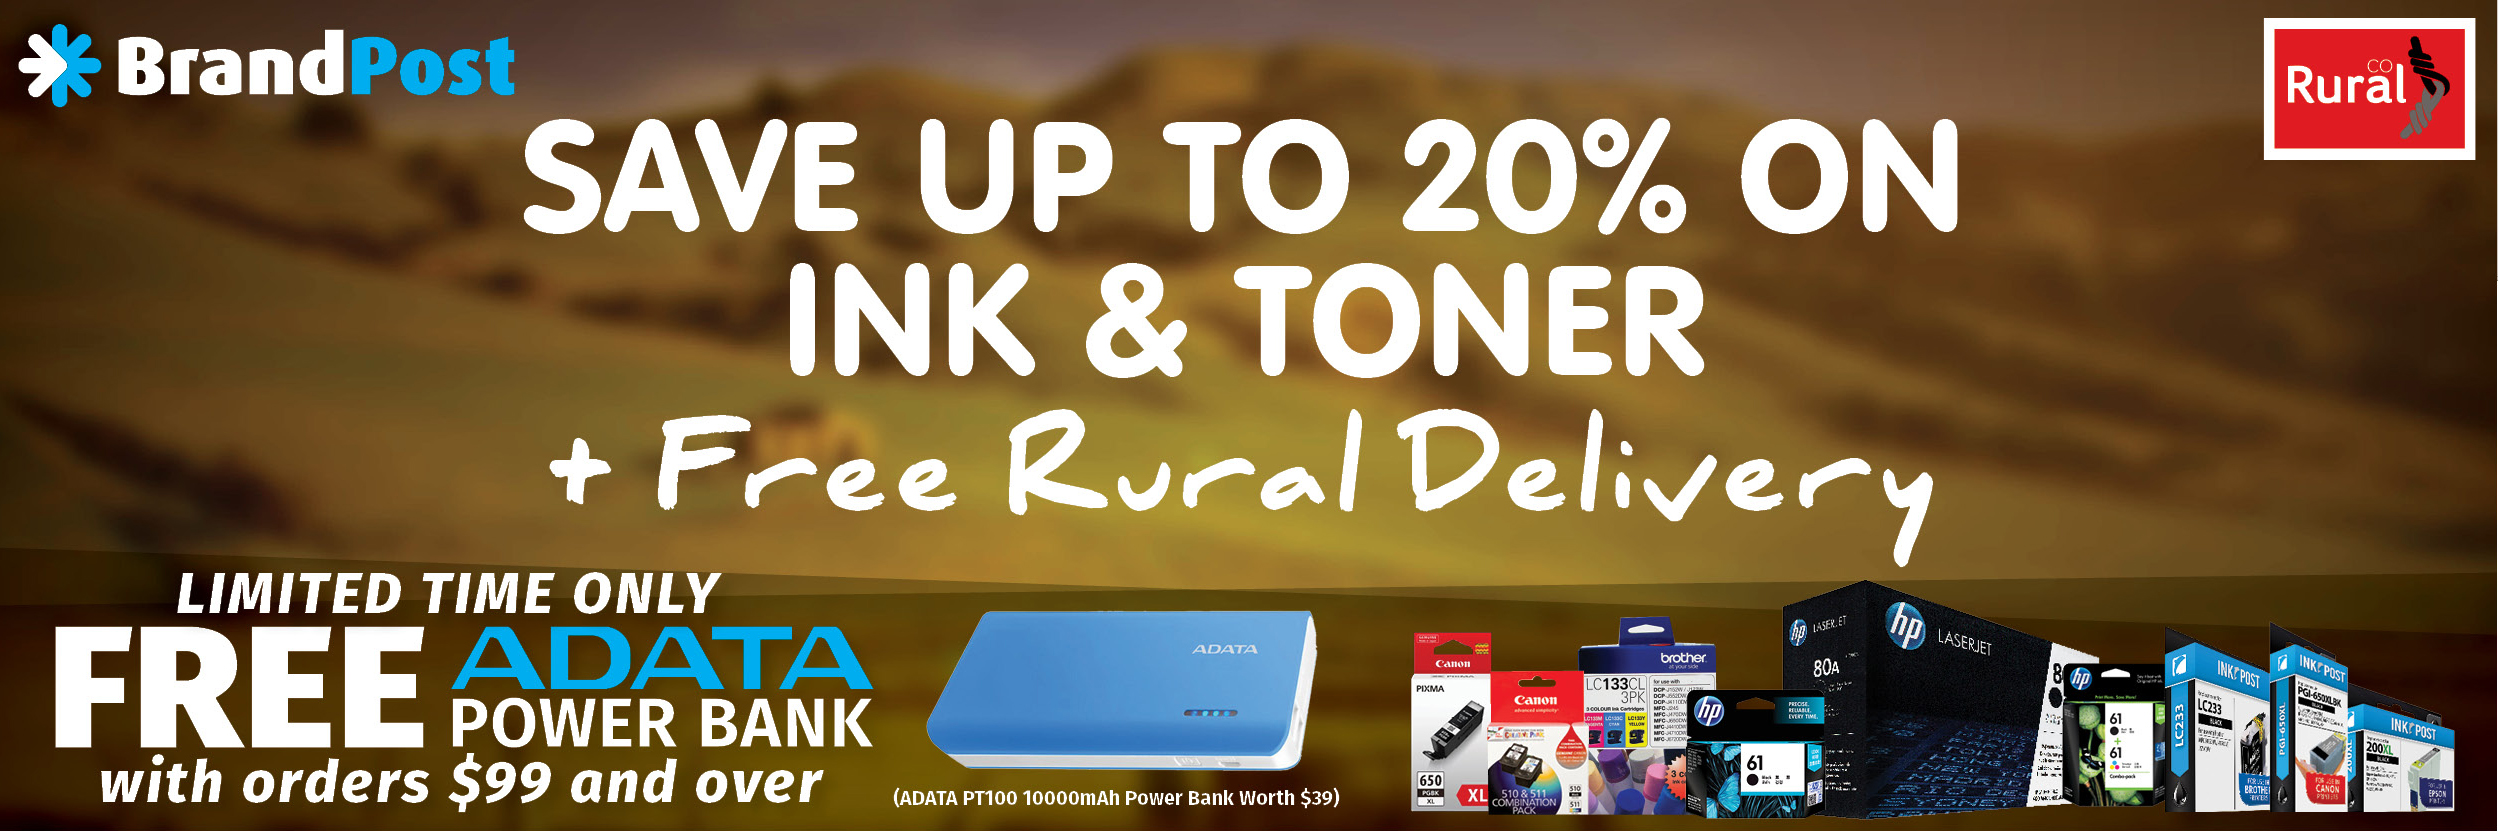 Ruralco email banner2